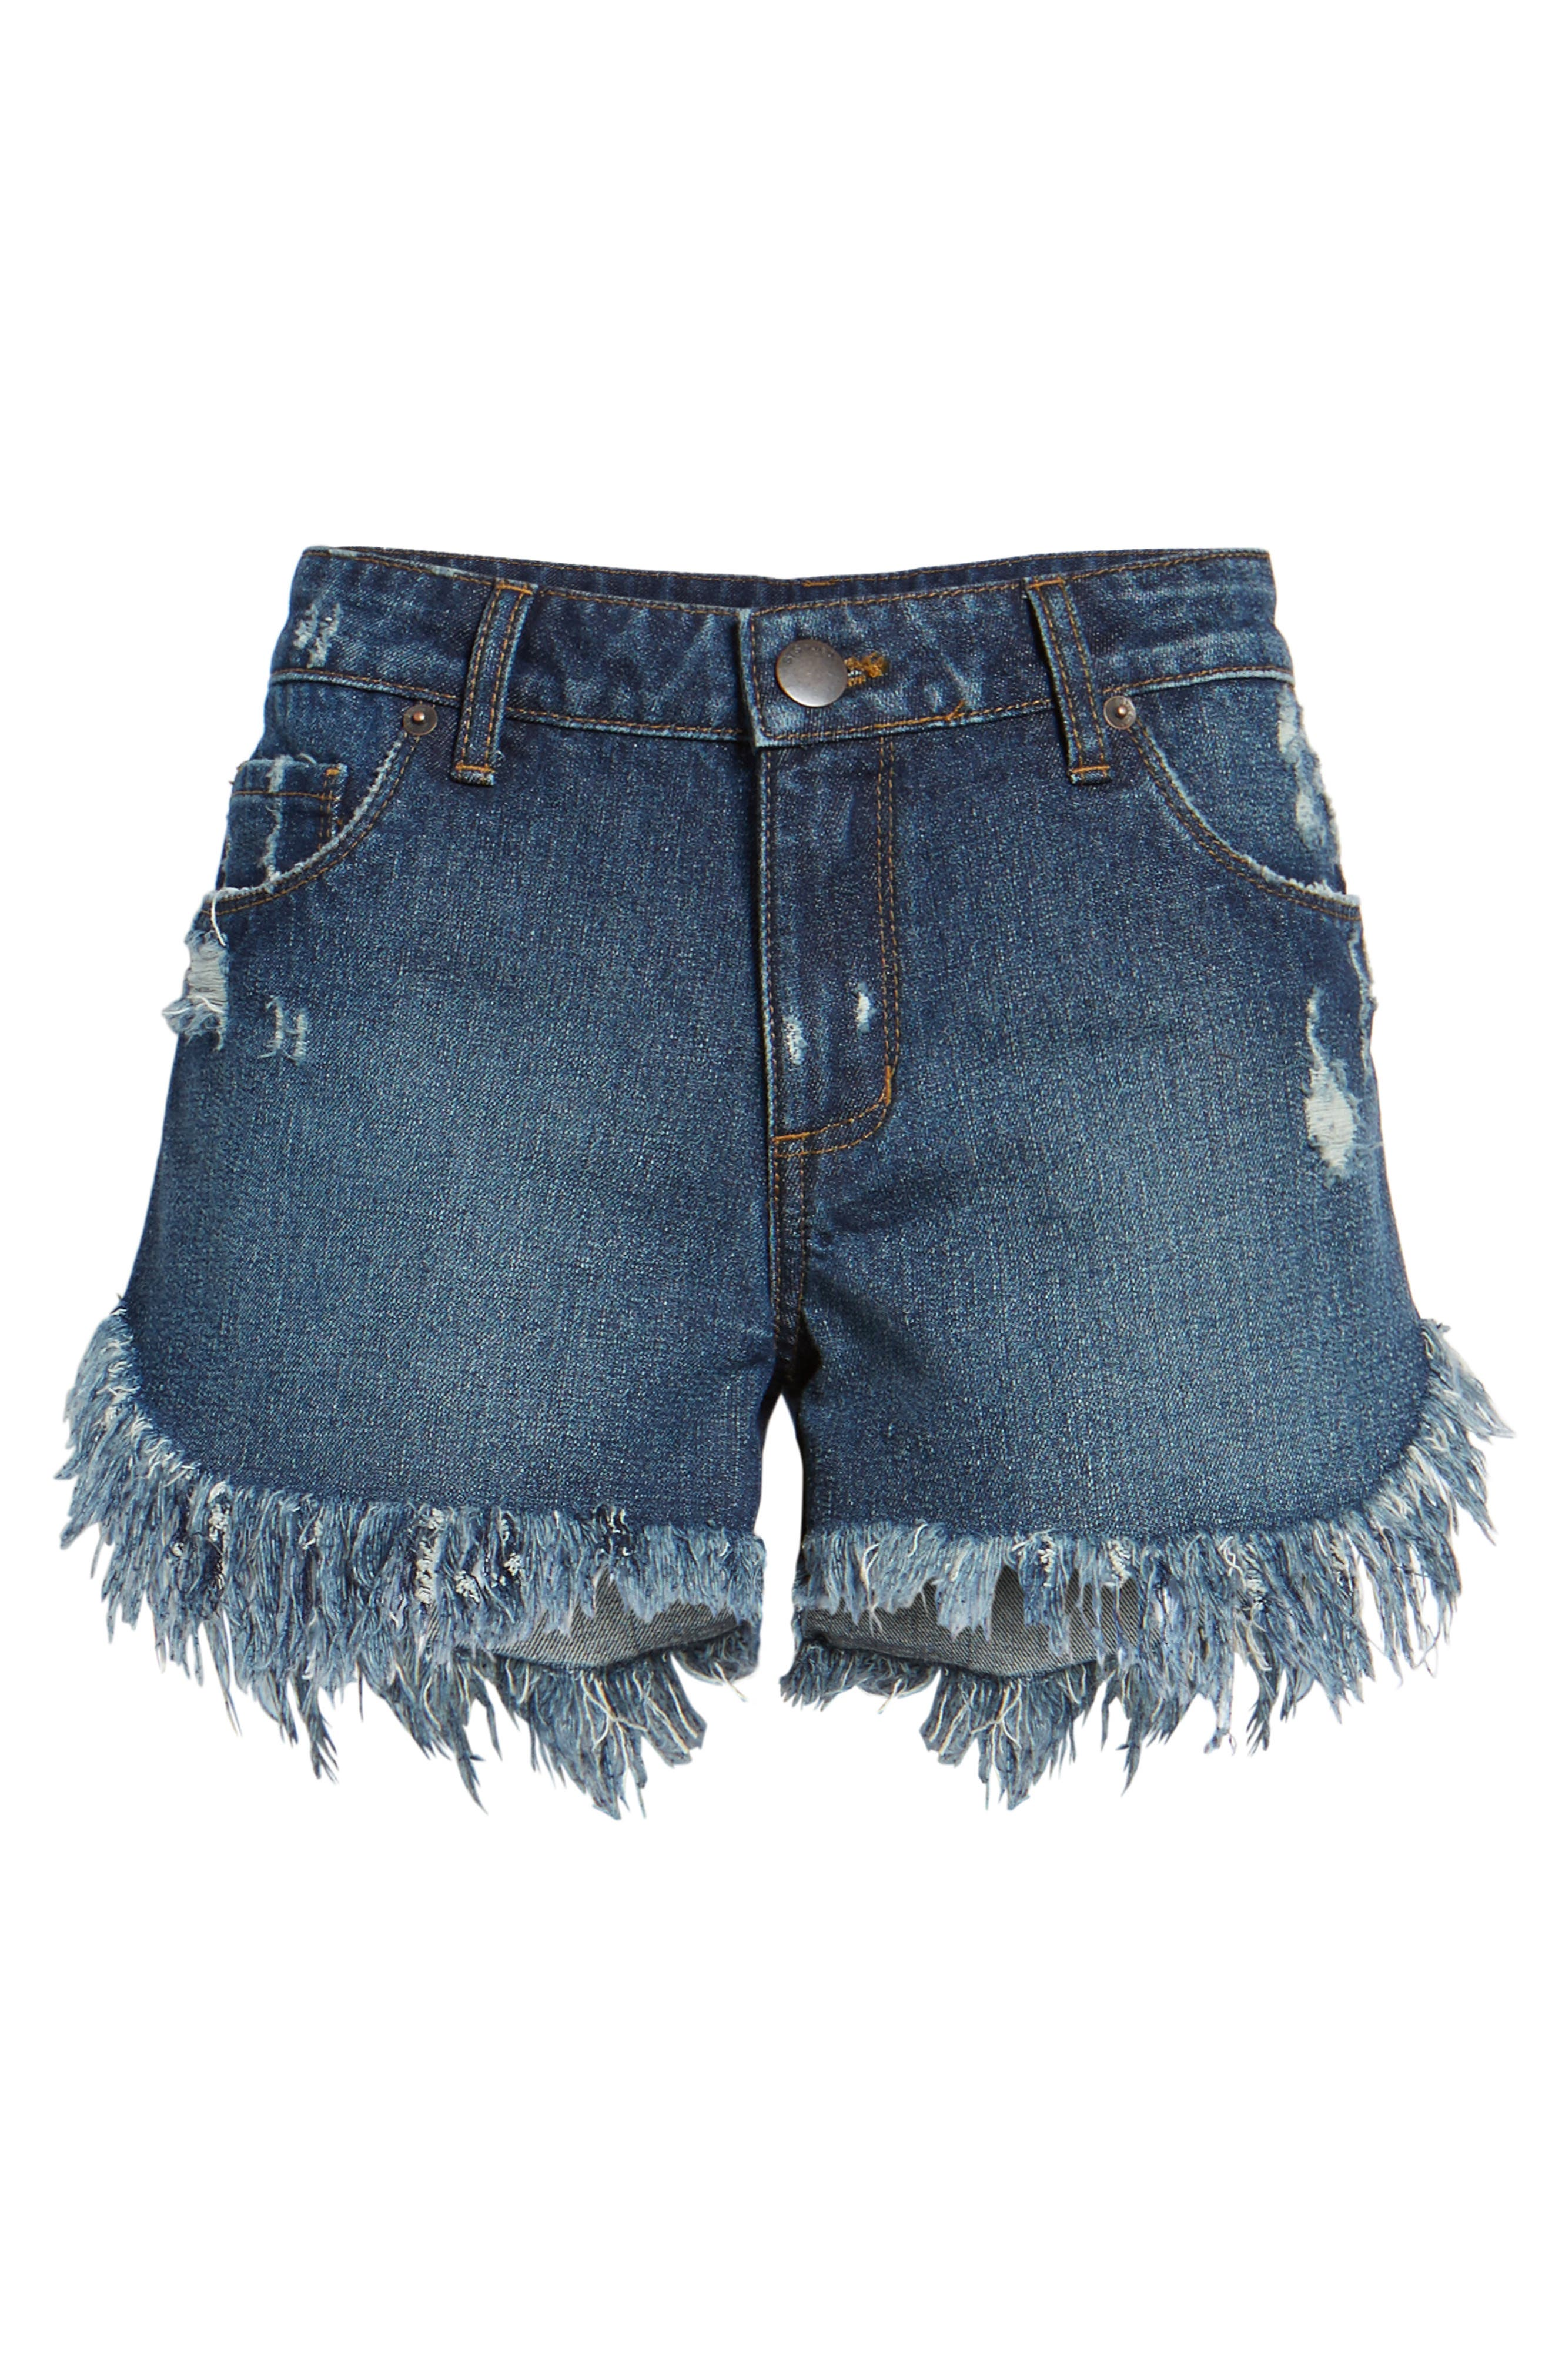 Extreme Fray Hem Jean Shorts,                             Alternate thumbnail 6, color,                             Mandeville